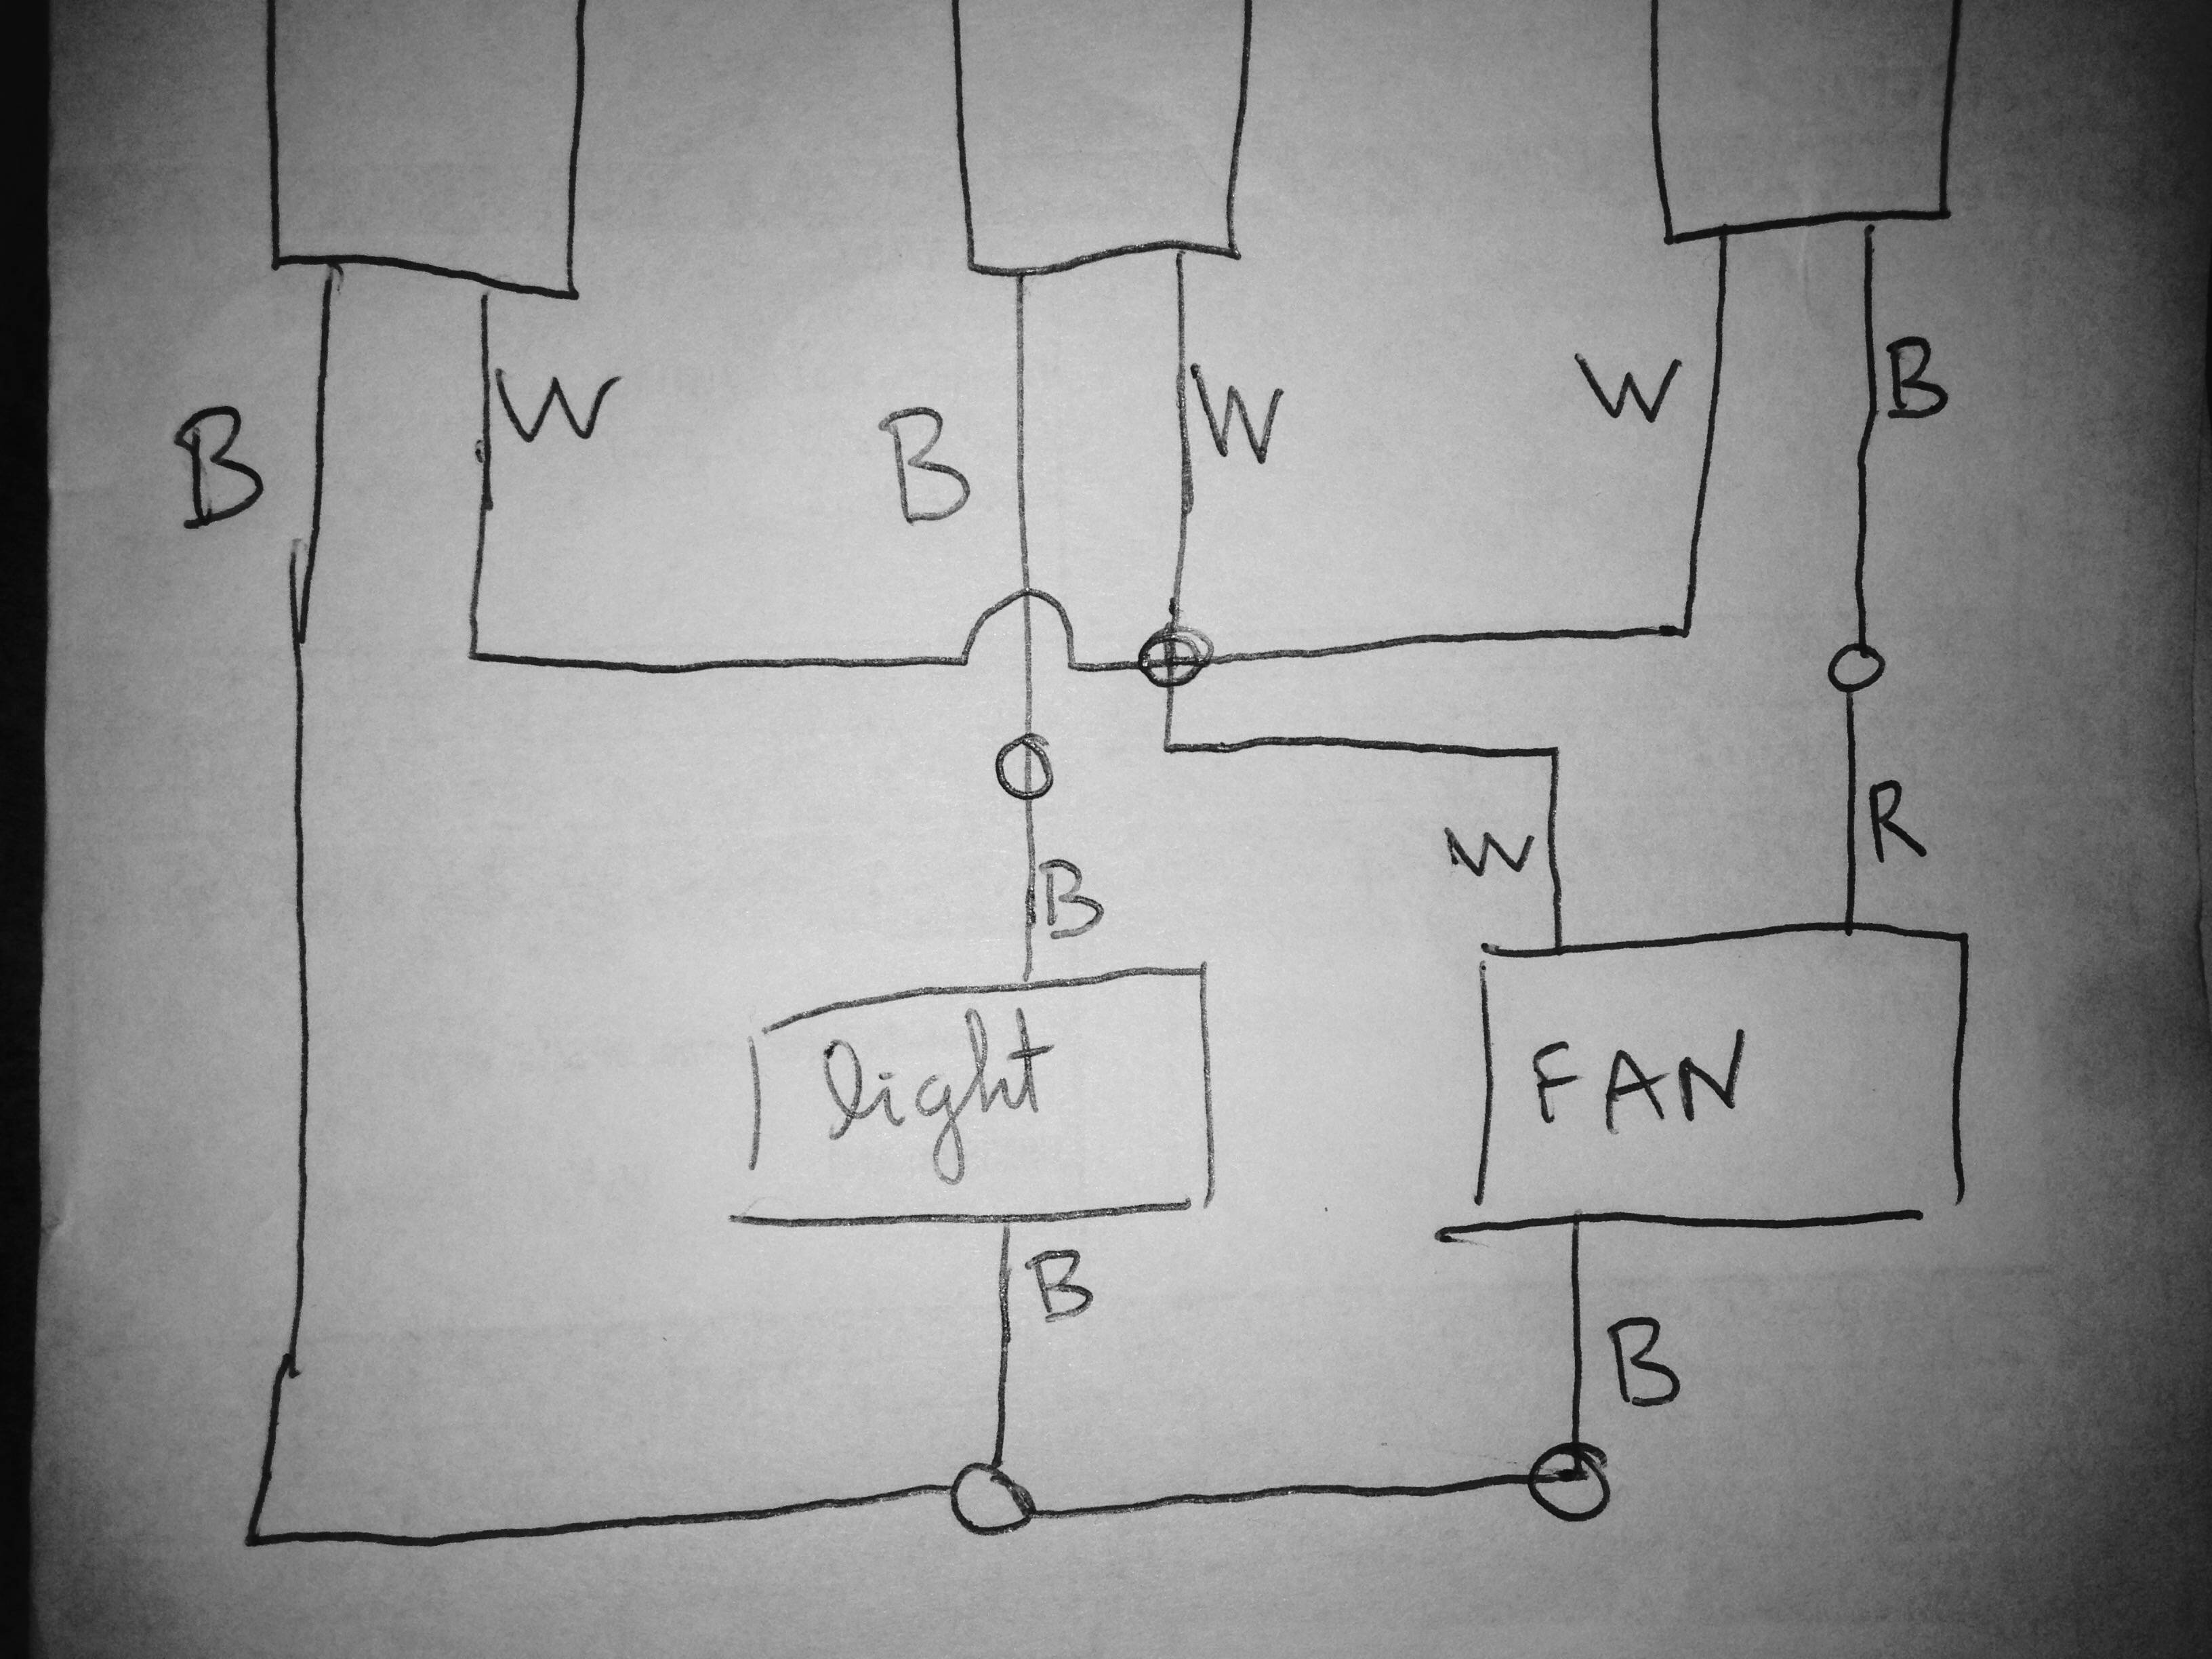 10 switch box wiring diagram 2003 kia rio engine help me understand complicated junction